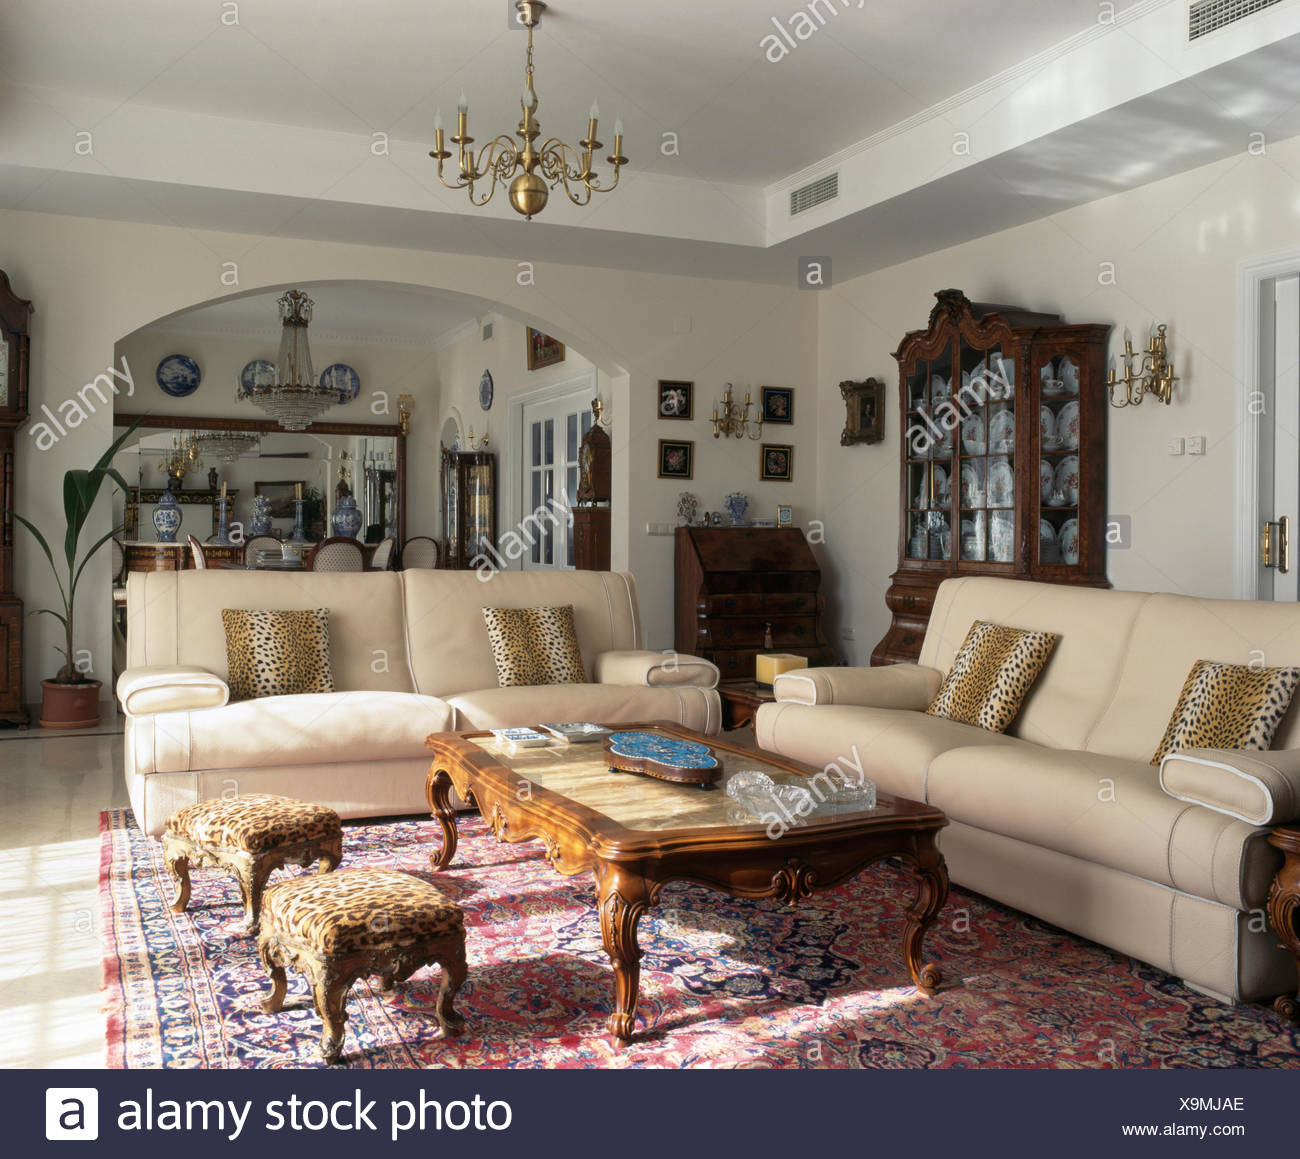 Cream Sofas And Leopard Print Cushions And Stools In Spanish Living Room